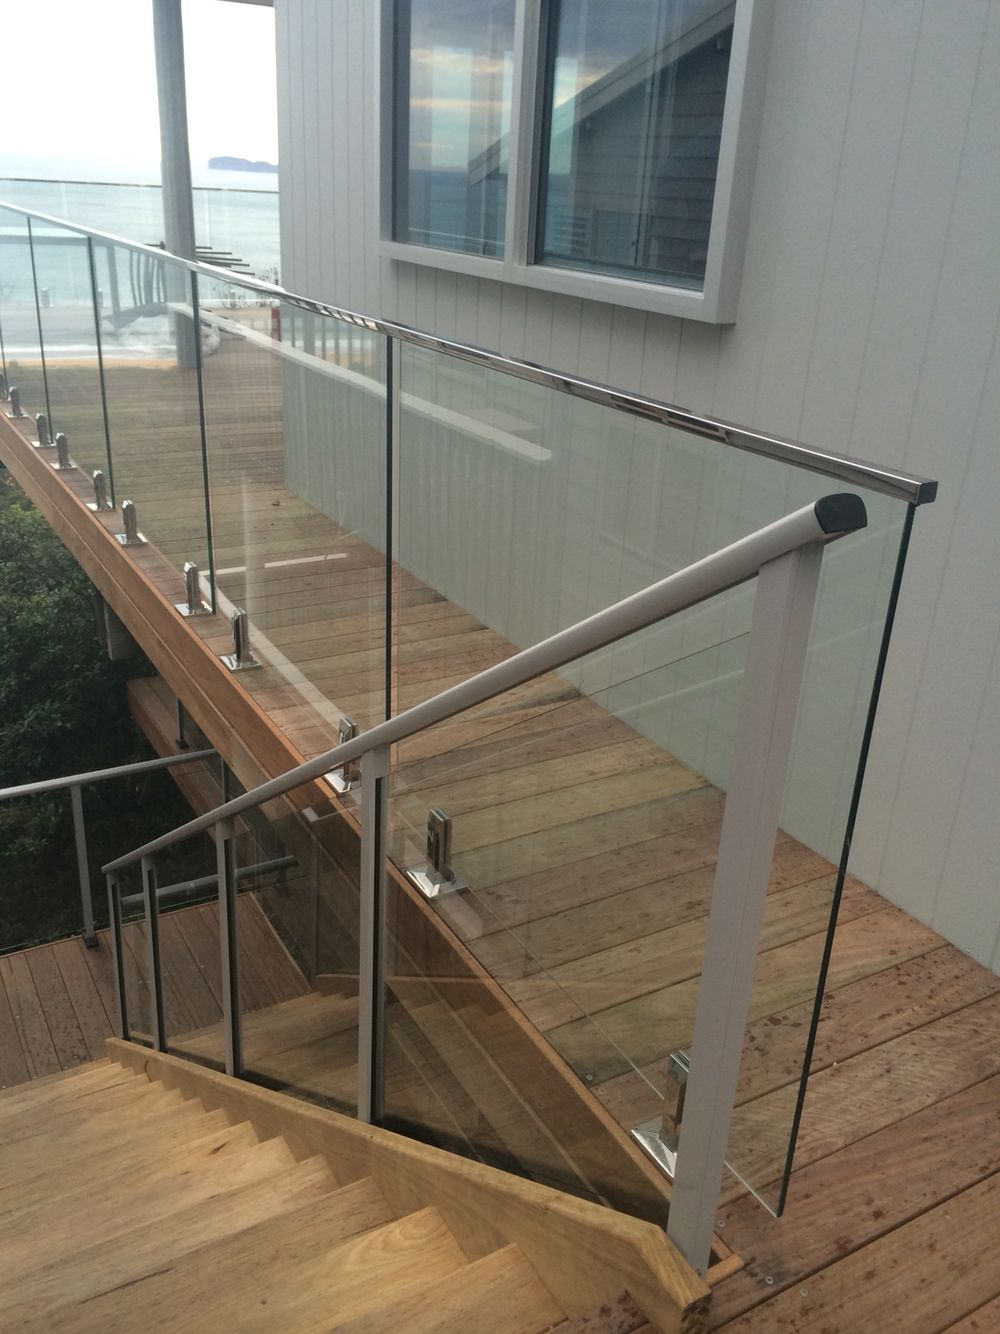 Glass Balustrade On Deck Going Down Stairs Glass Balustrade Glass Railing Frameless Glass Balustrade